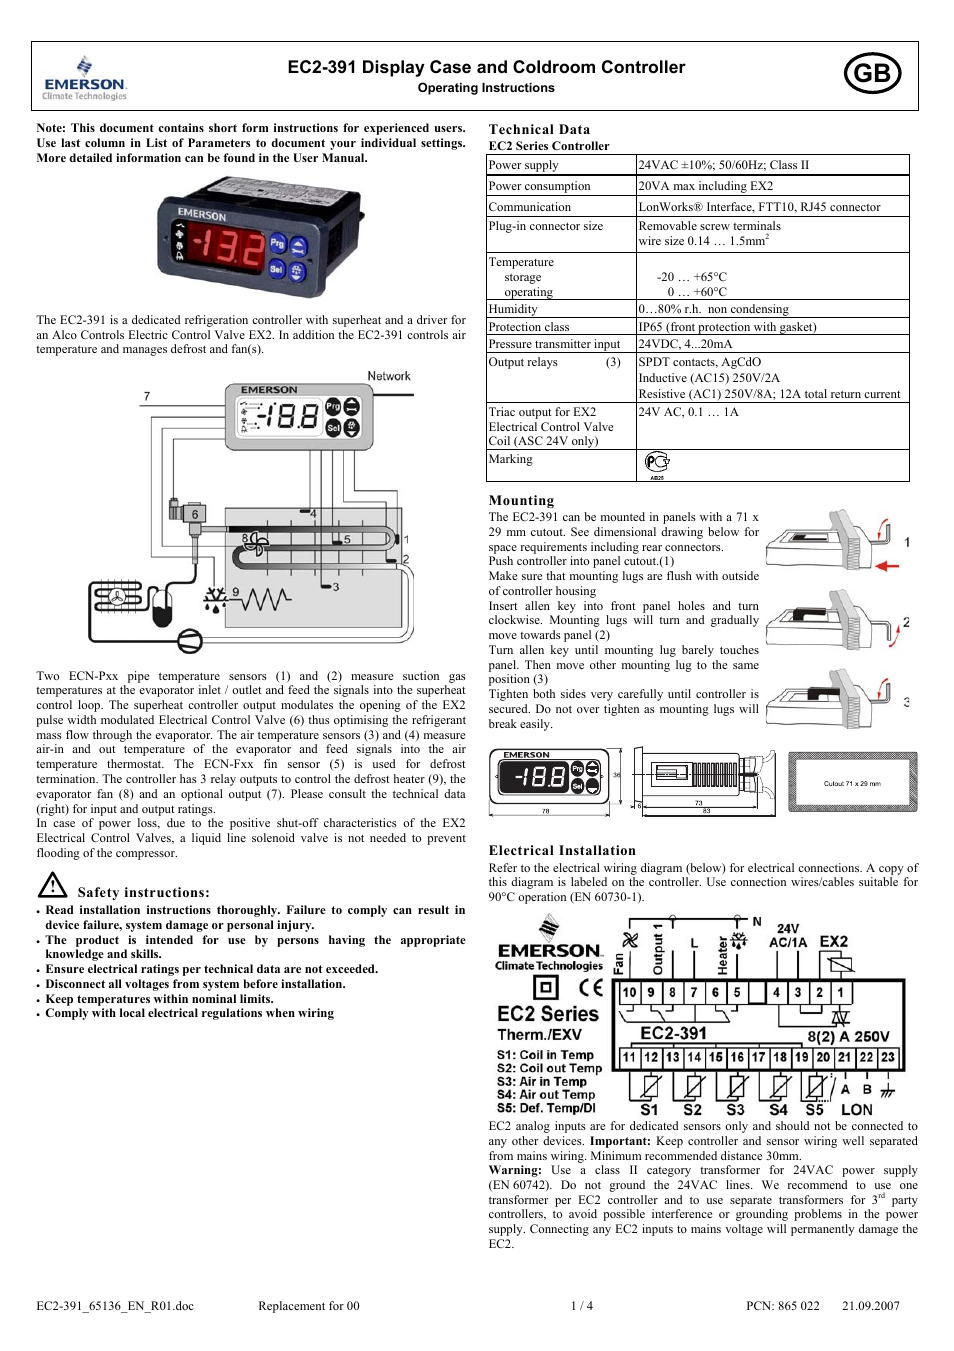 emerson display case and cold room controller ec2 391 page1 emerson display case and cold room controller ec2 391 user manual cold room control panel wiring diagram at gsmx.co